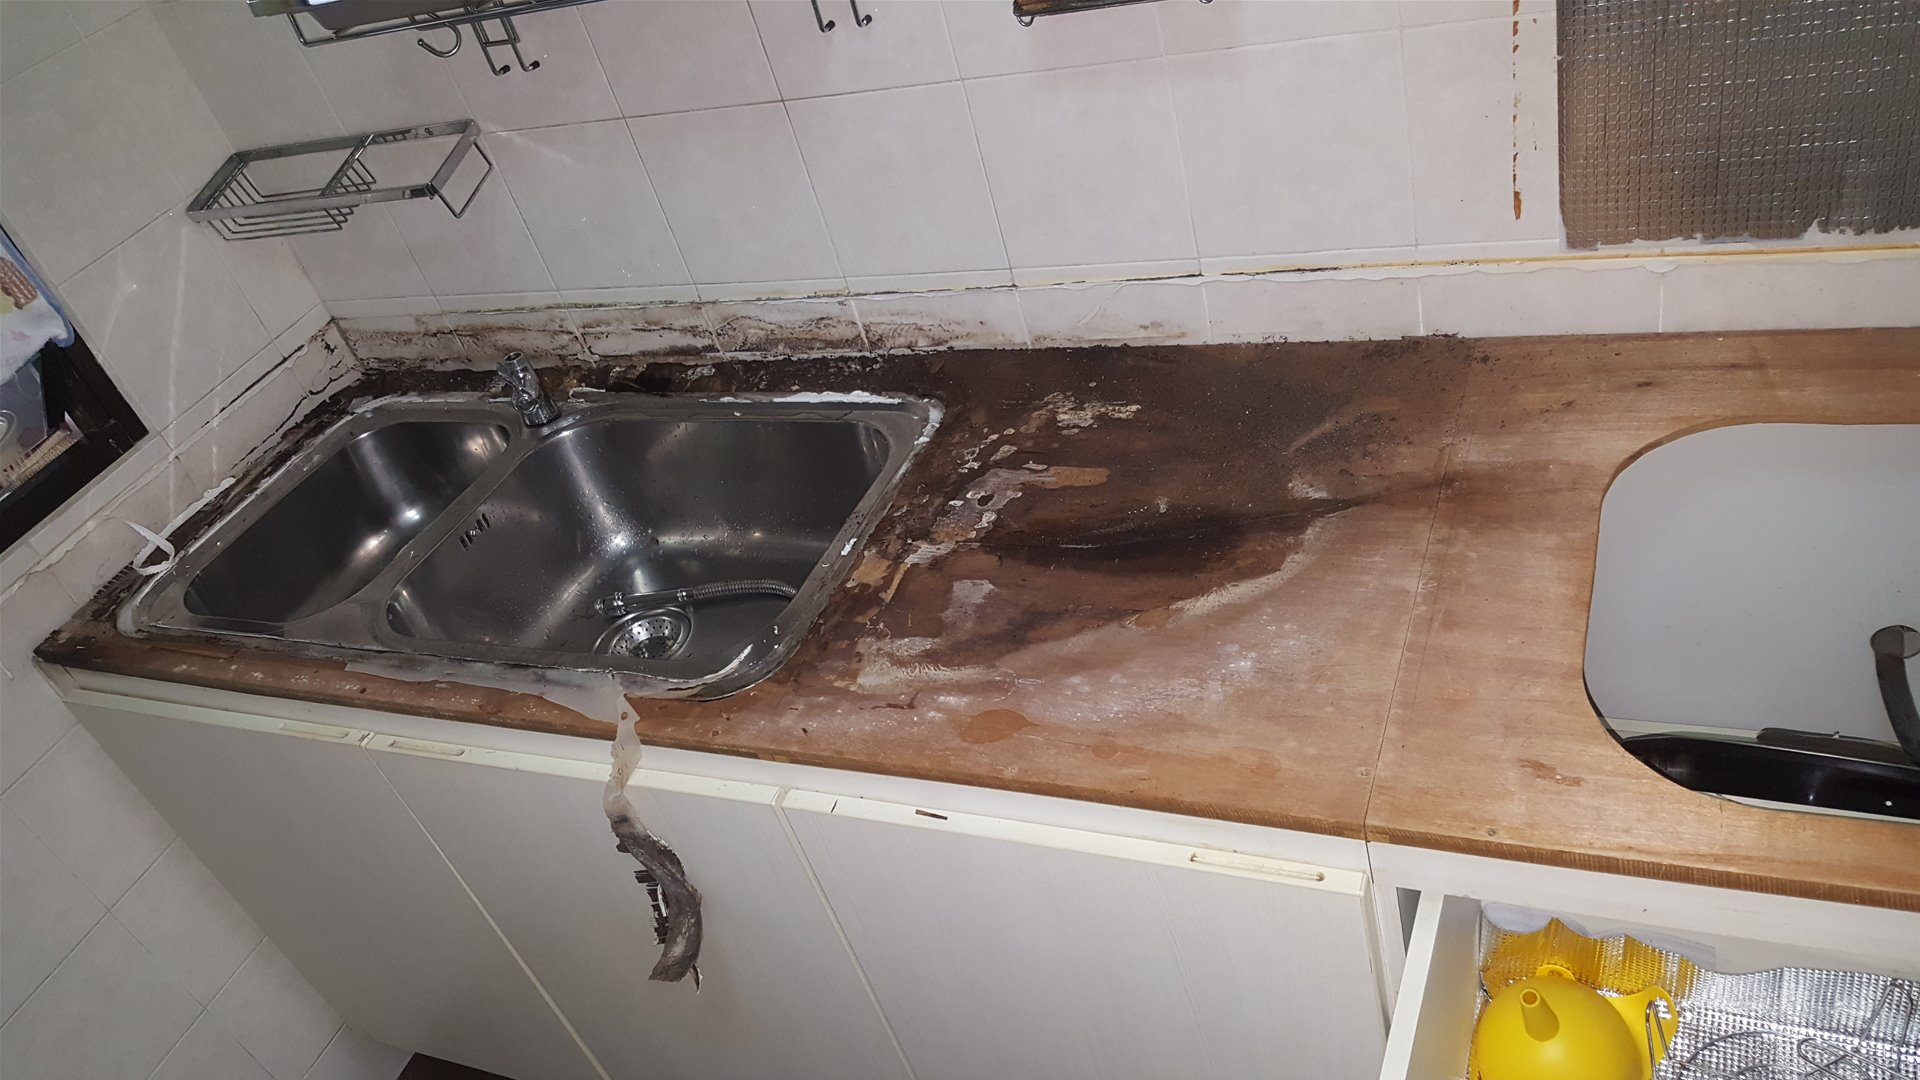 20171208_101737 - Solid Surface removed exposing the damaged timber